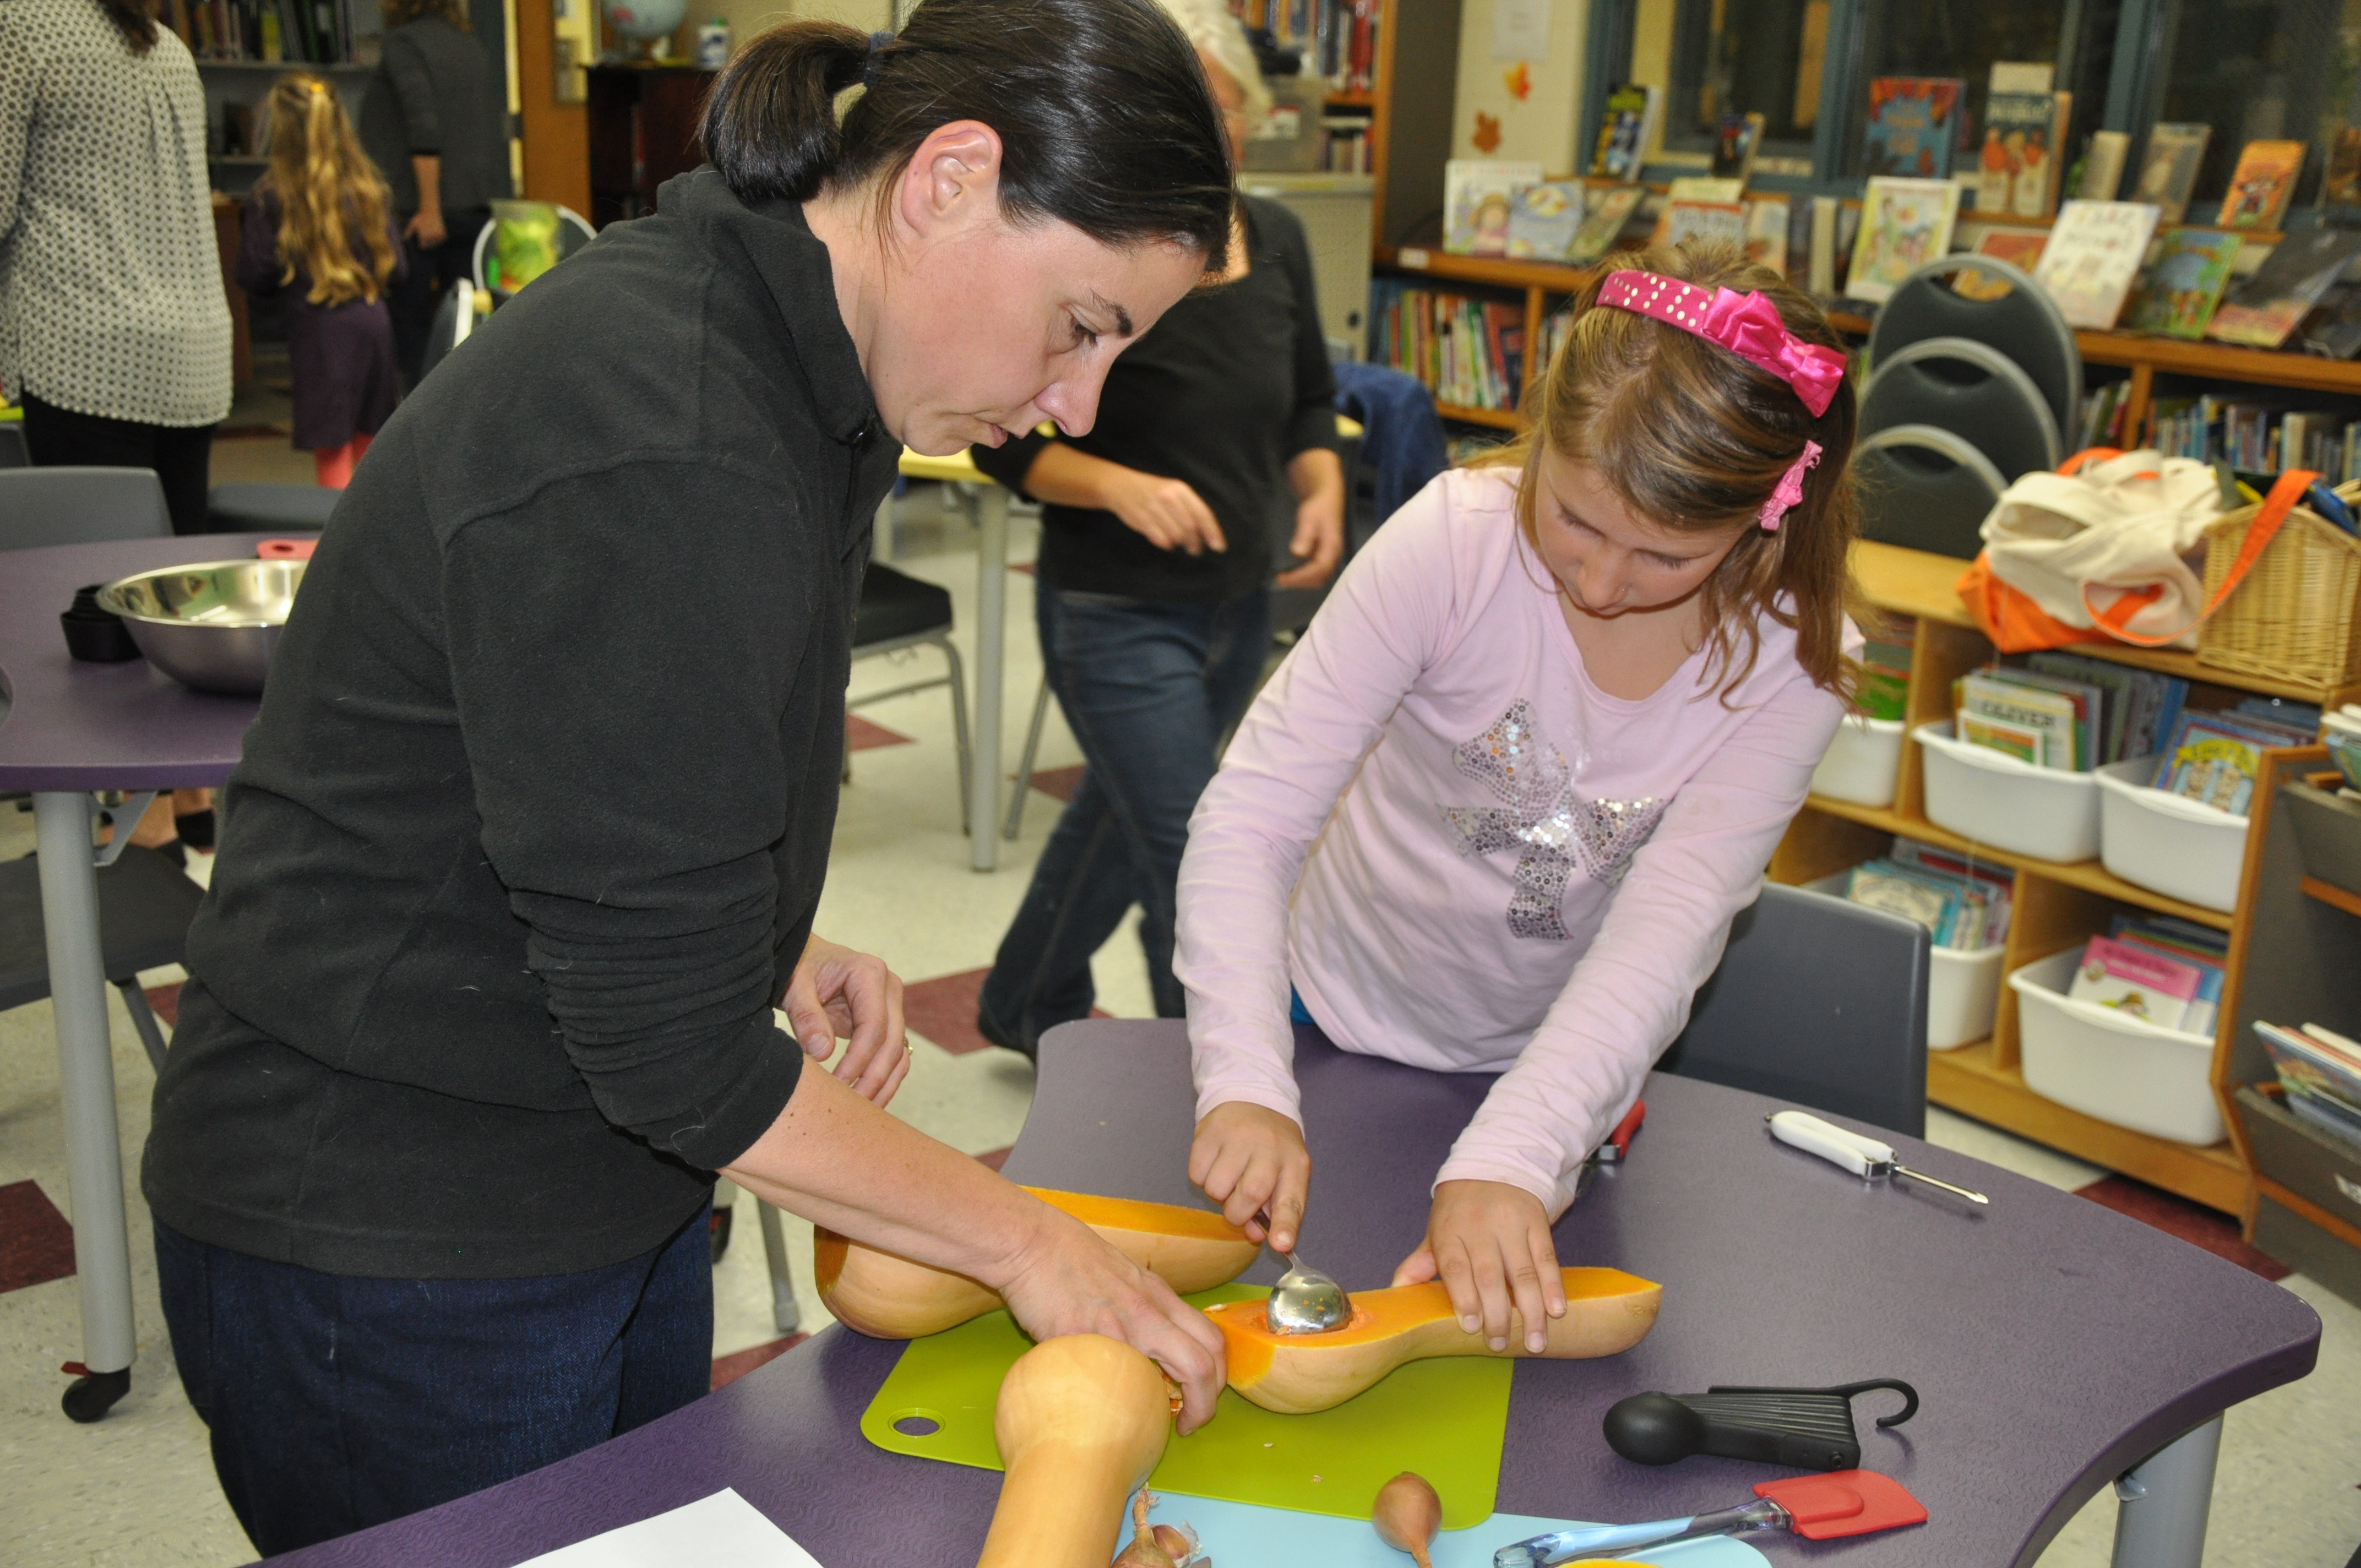 A student harvests squash with her parent as part of a cooking class at Fletcher Elementary School